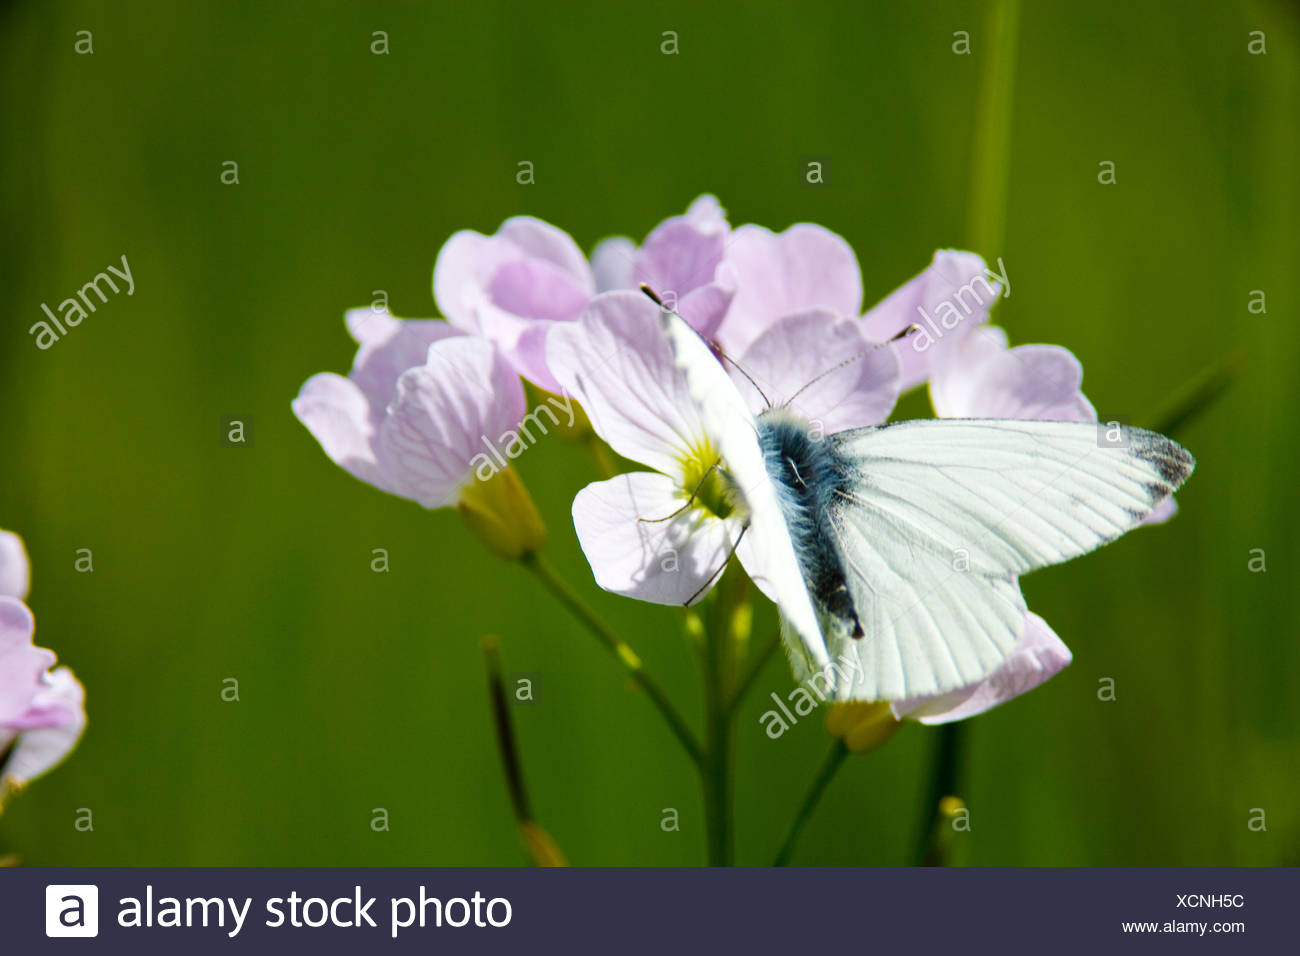 Mayflower or cuckoo flower with white butterfly Stock Photo